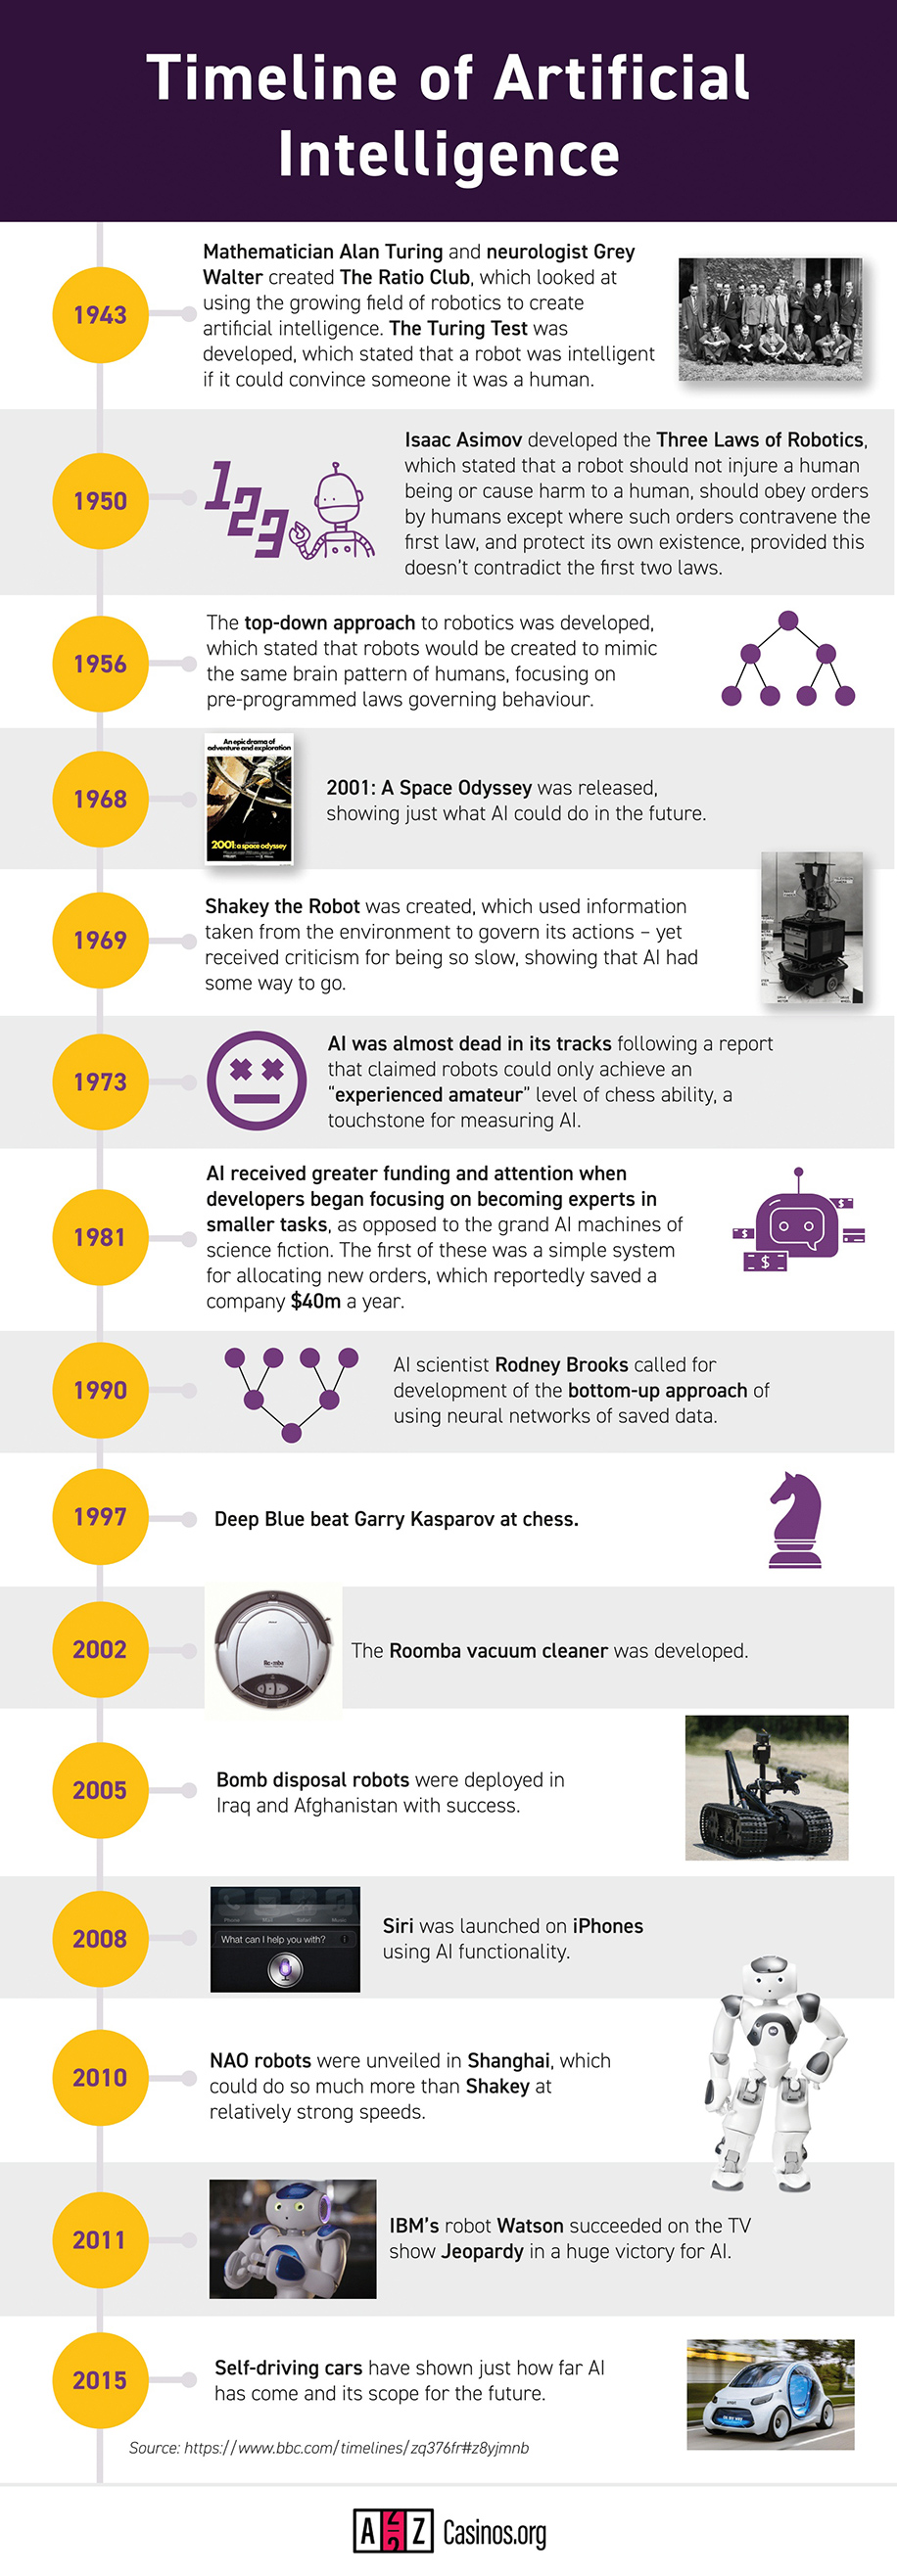 Timeline of artifical intelligence